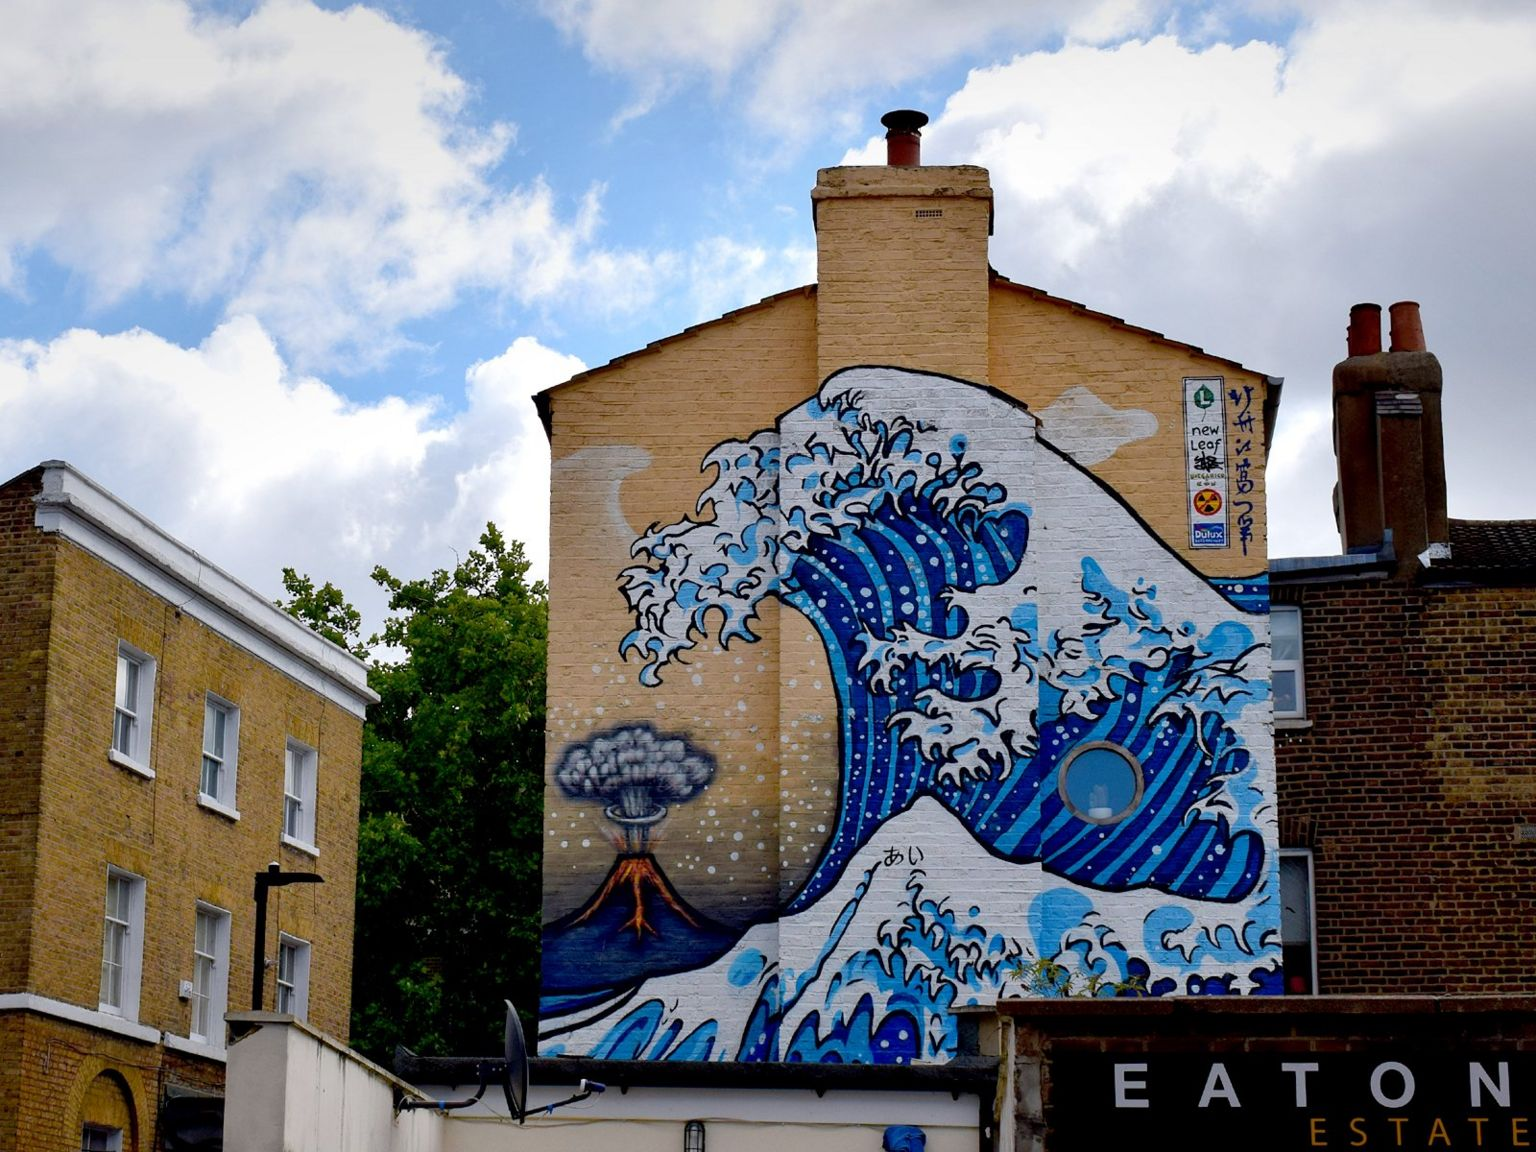 The wave mural in Camberwell